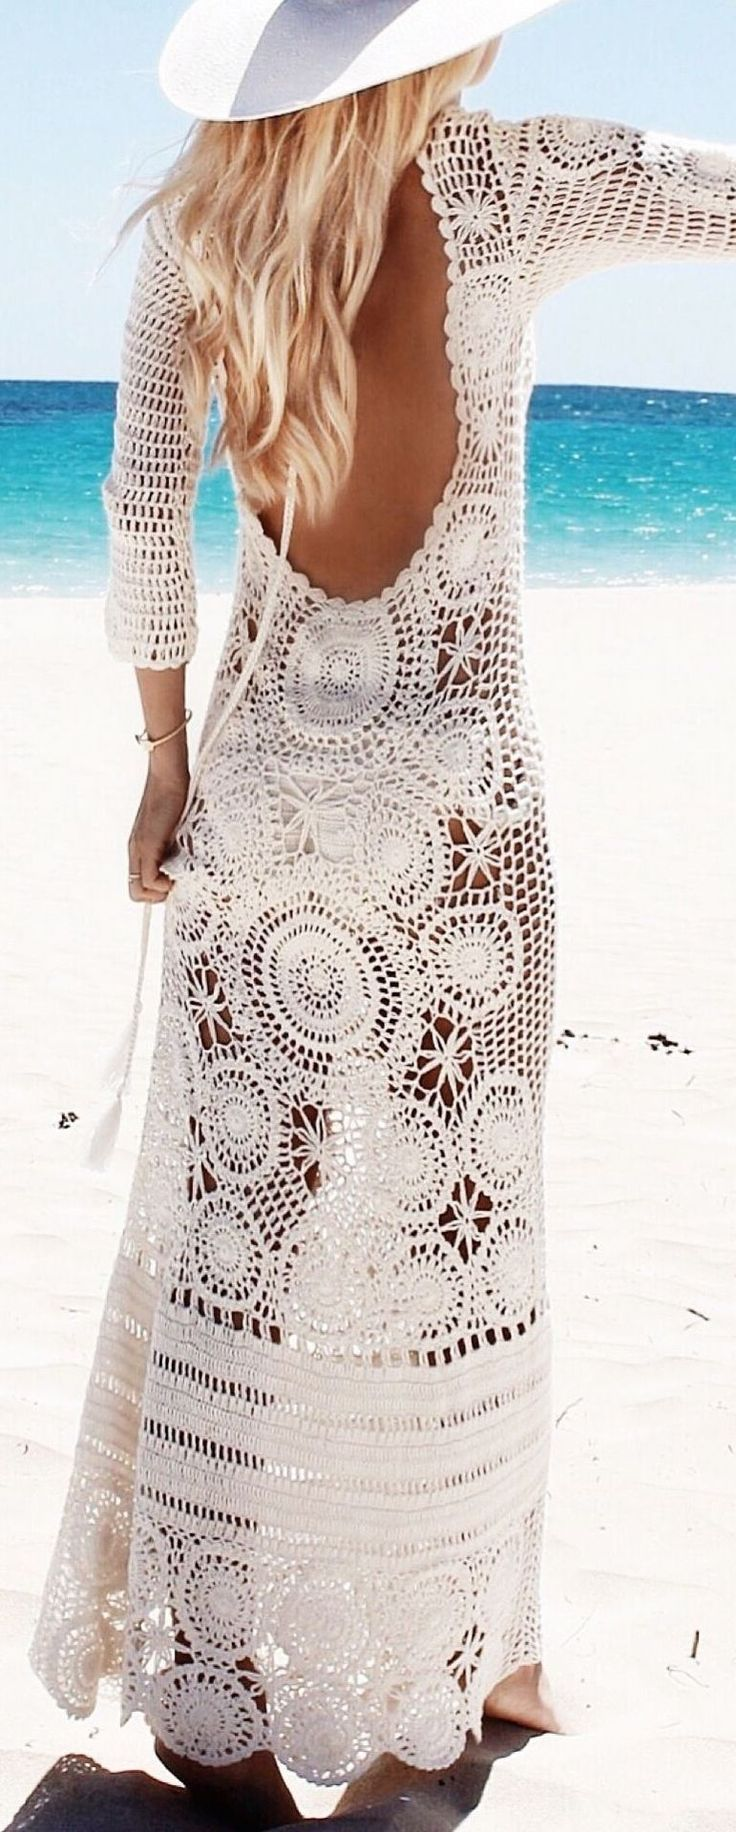 Say hello to sunny beach days with a gorgeous crochet maxi dress! It's the perfect swim cover-up when you're on a tropical getaway!